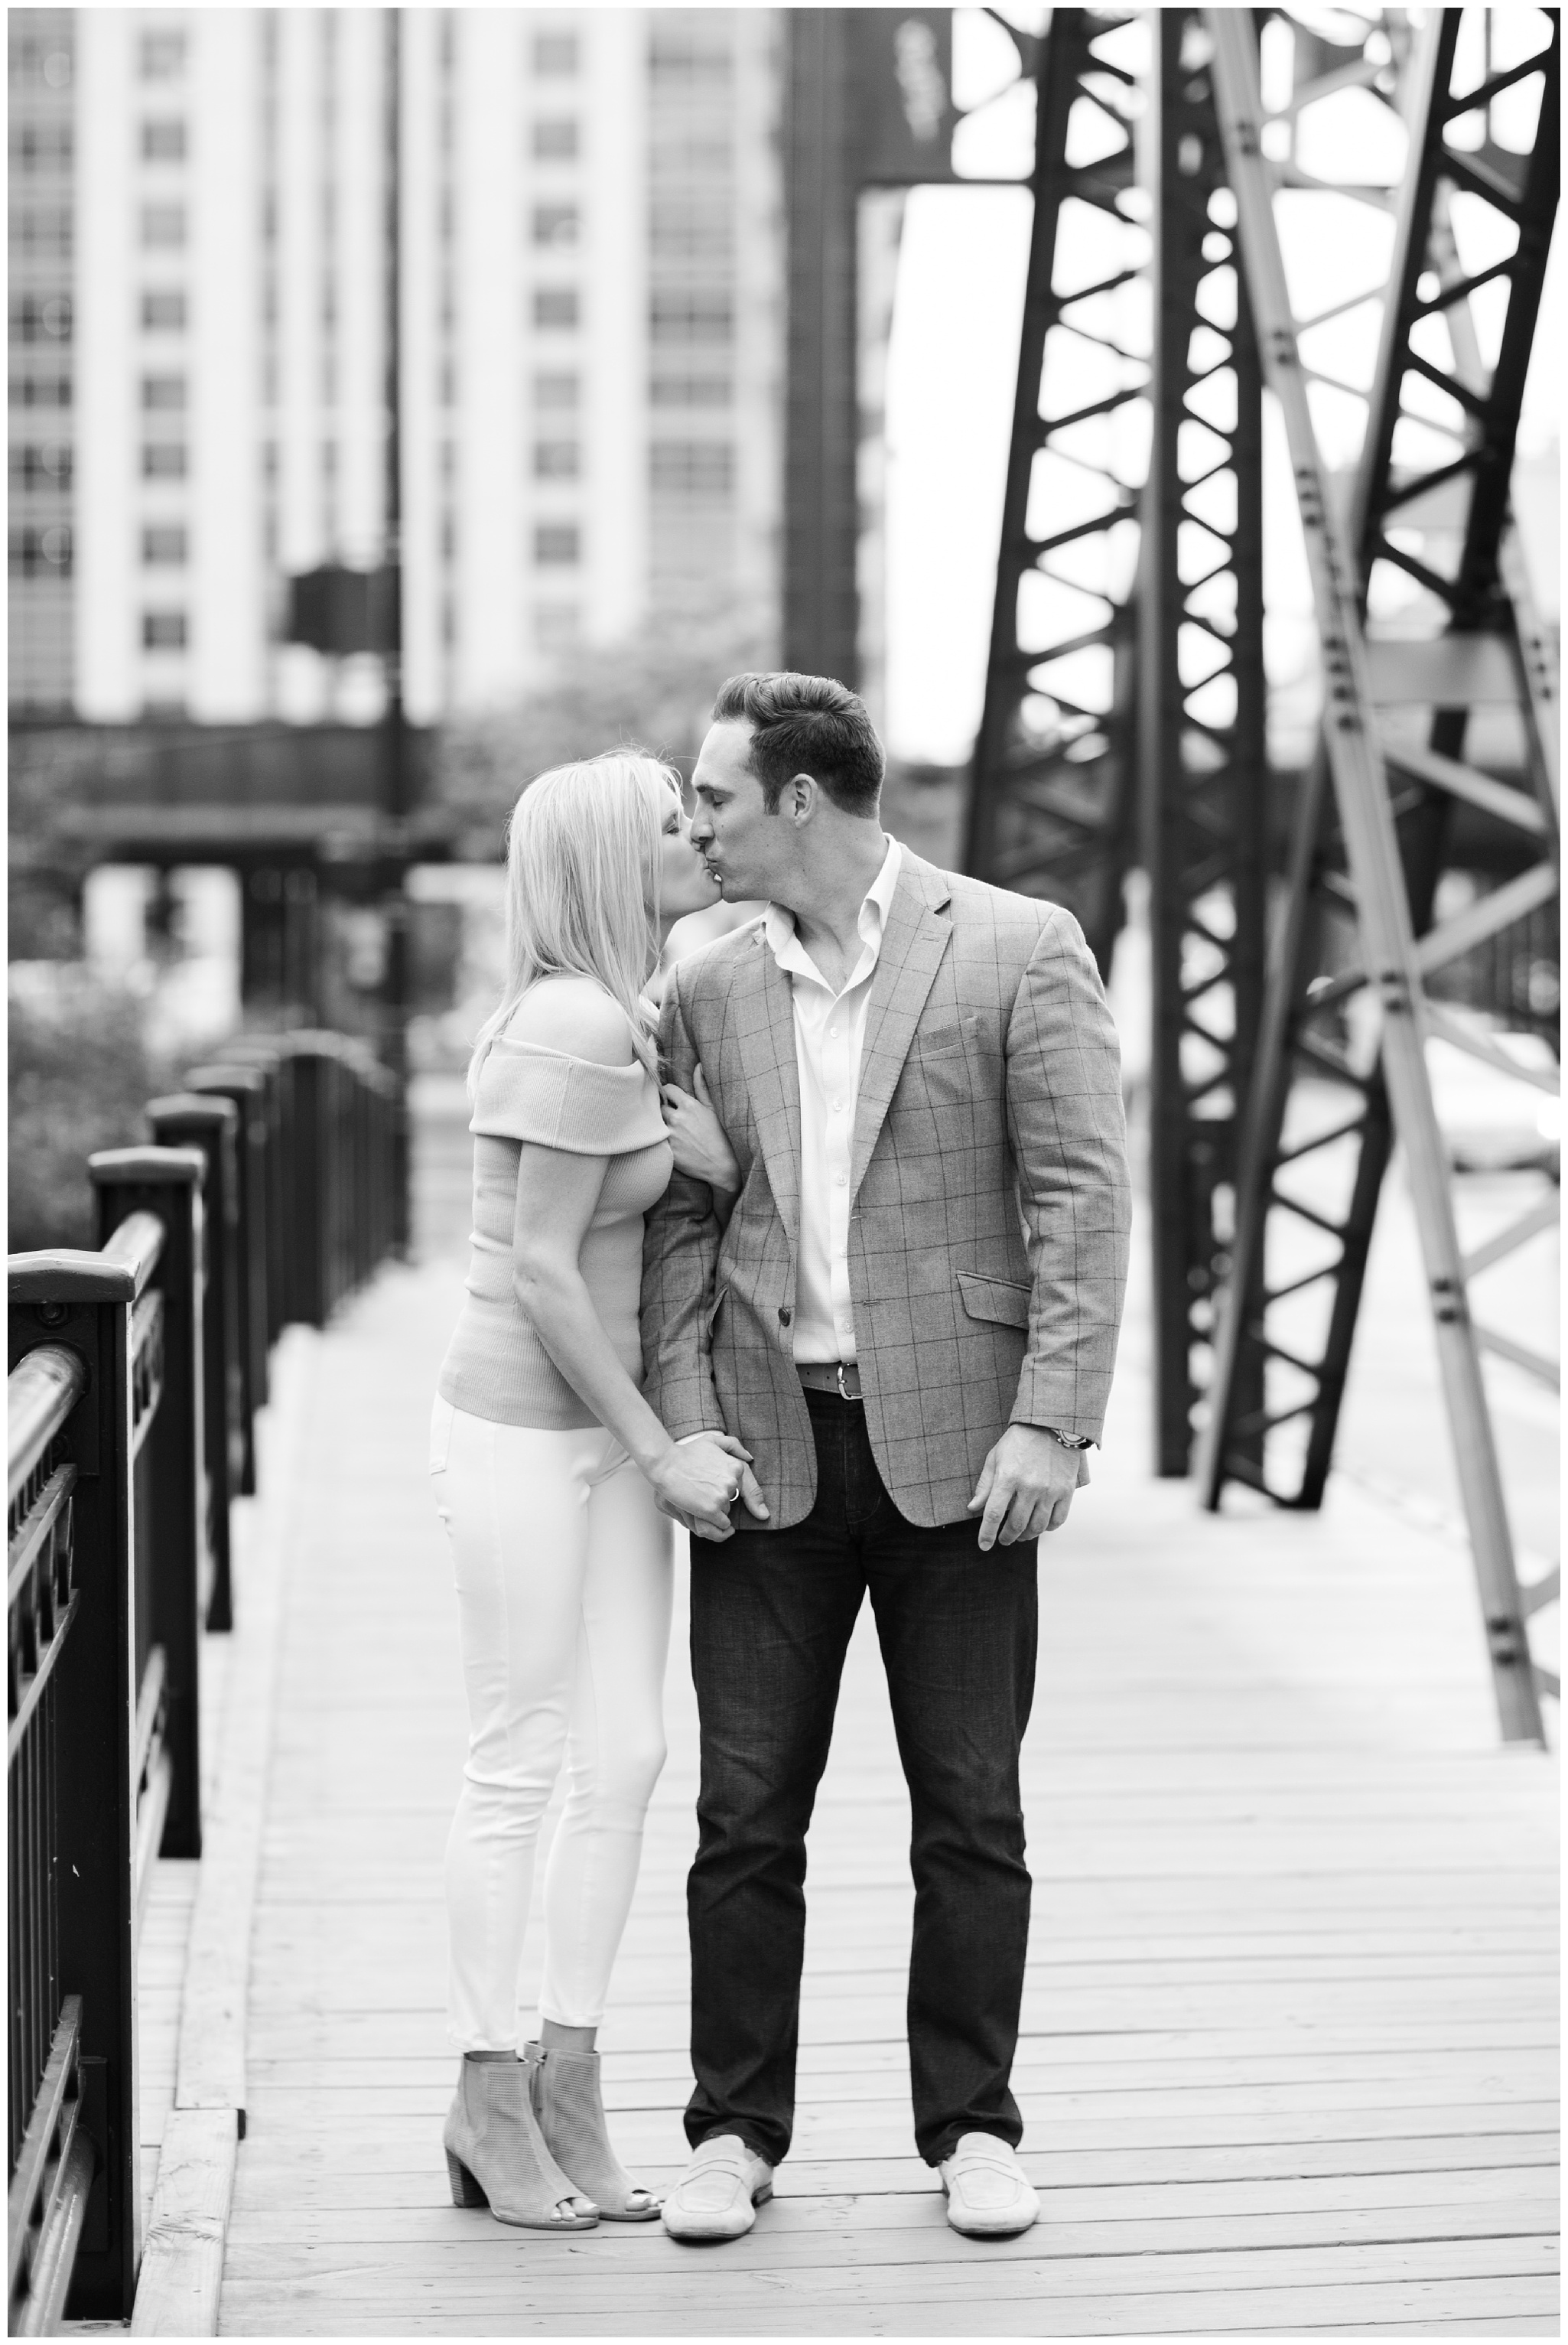 M&T_ChicagoEngagementSession__0175.jpg